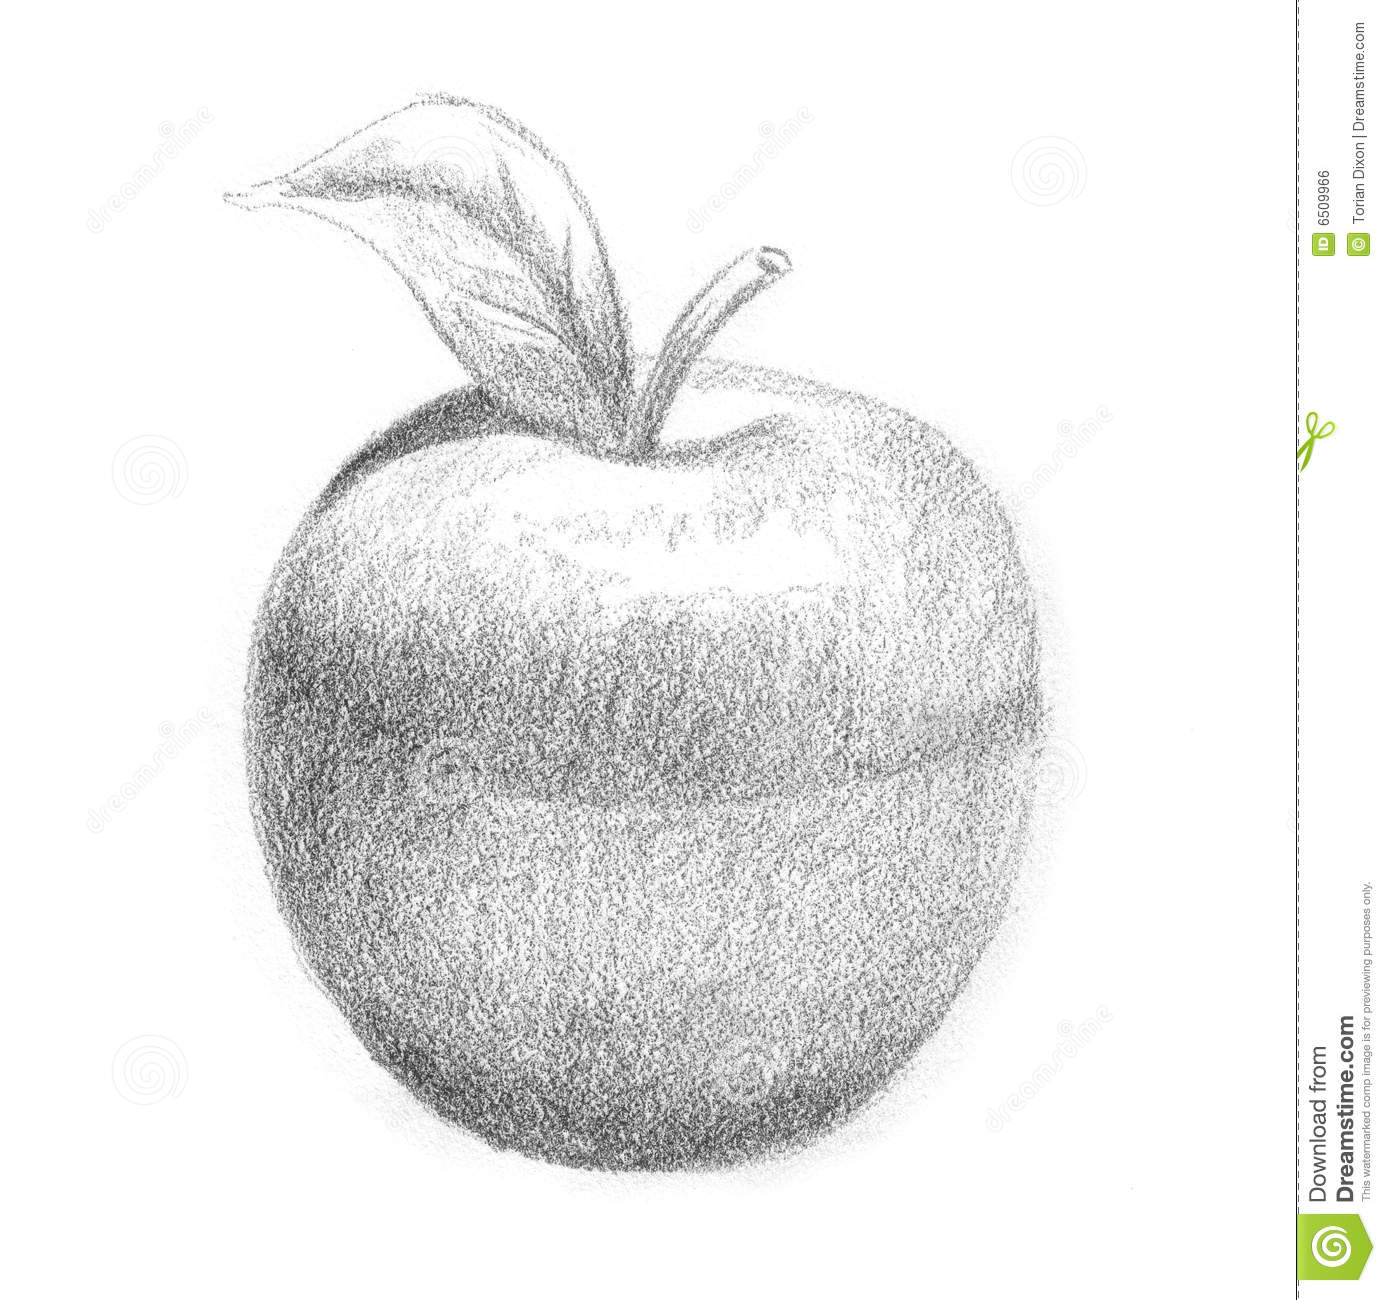 how to draw an apple step by step with shading